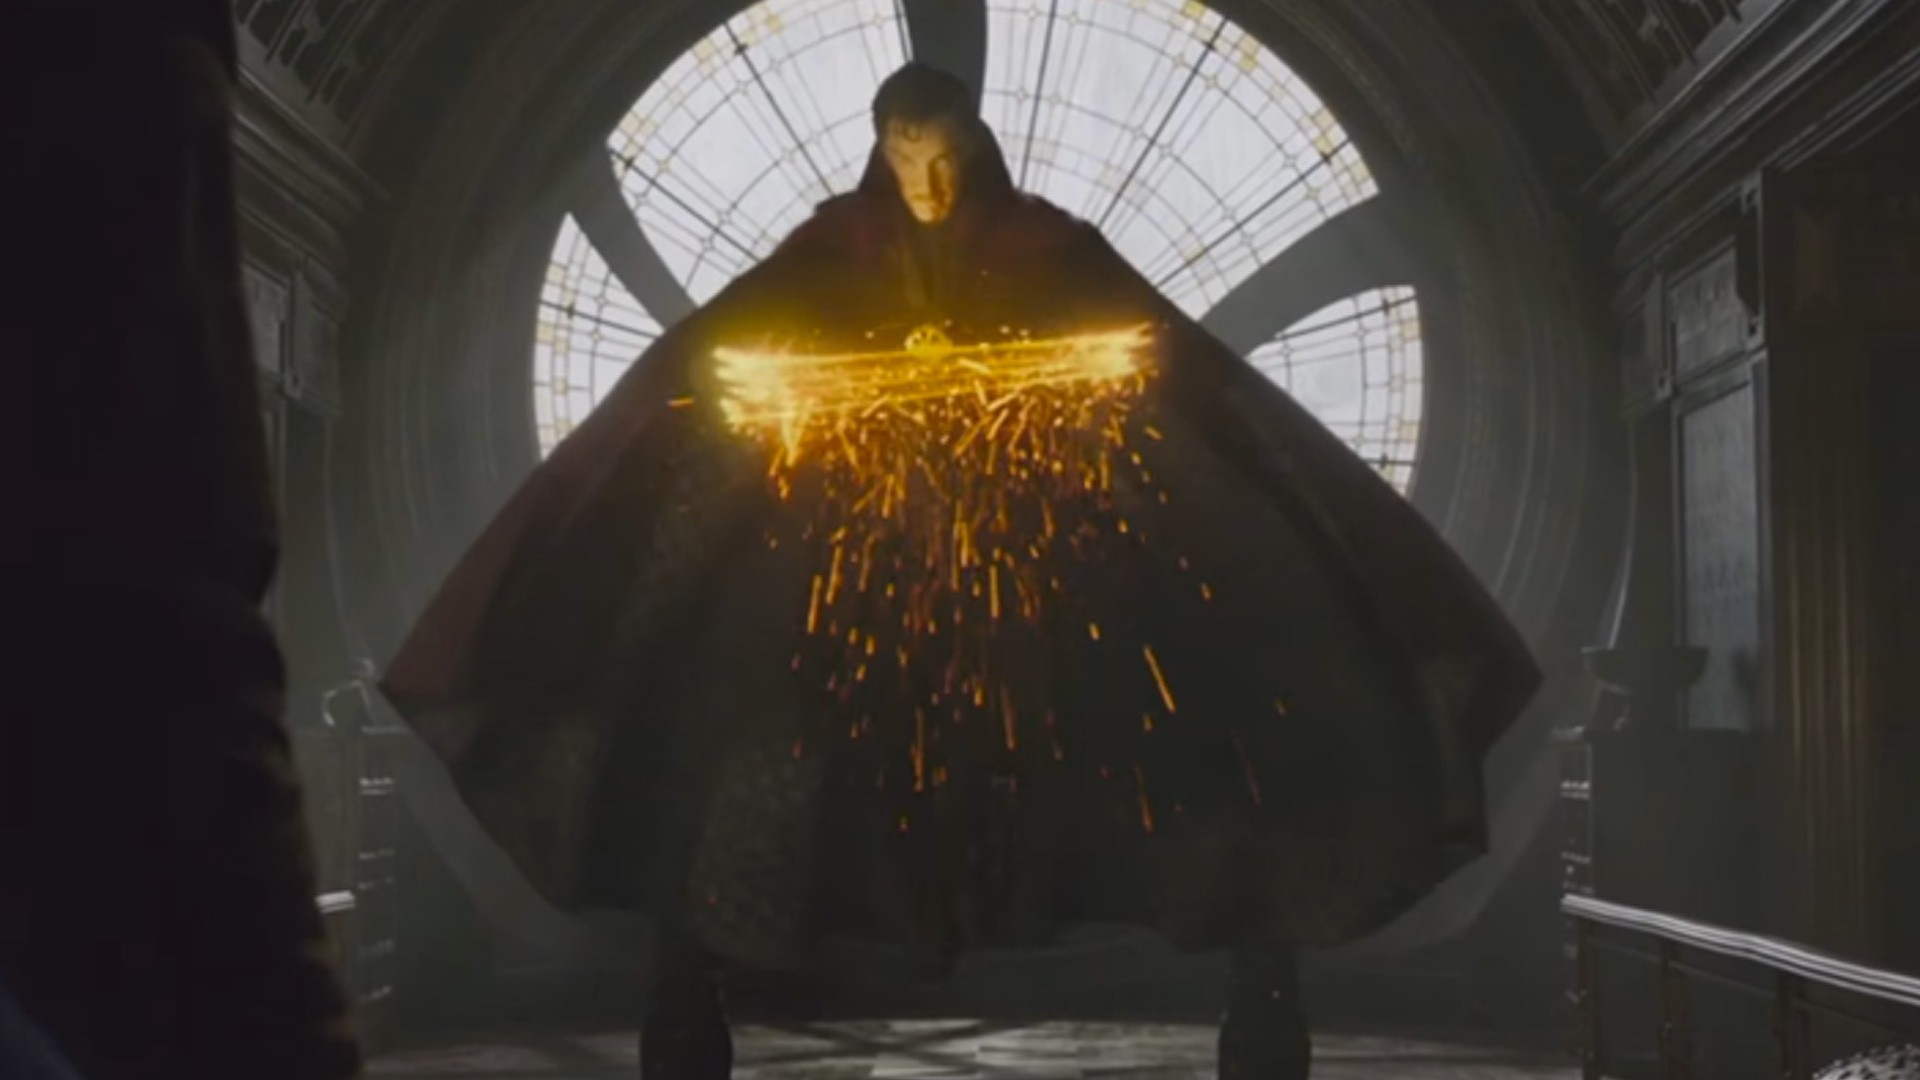 3 DOCTOR STRANGE Promos Focus On The Cloak Of Levitation The Avengers As Dogs And IMAX